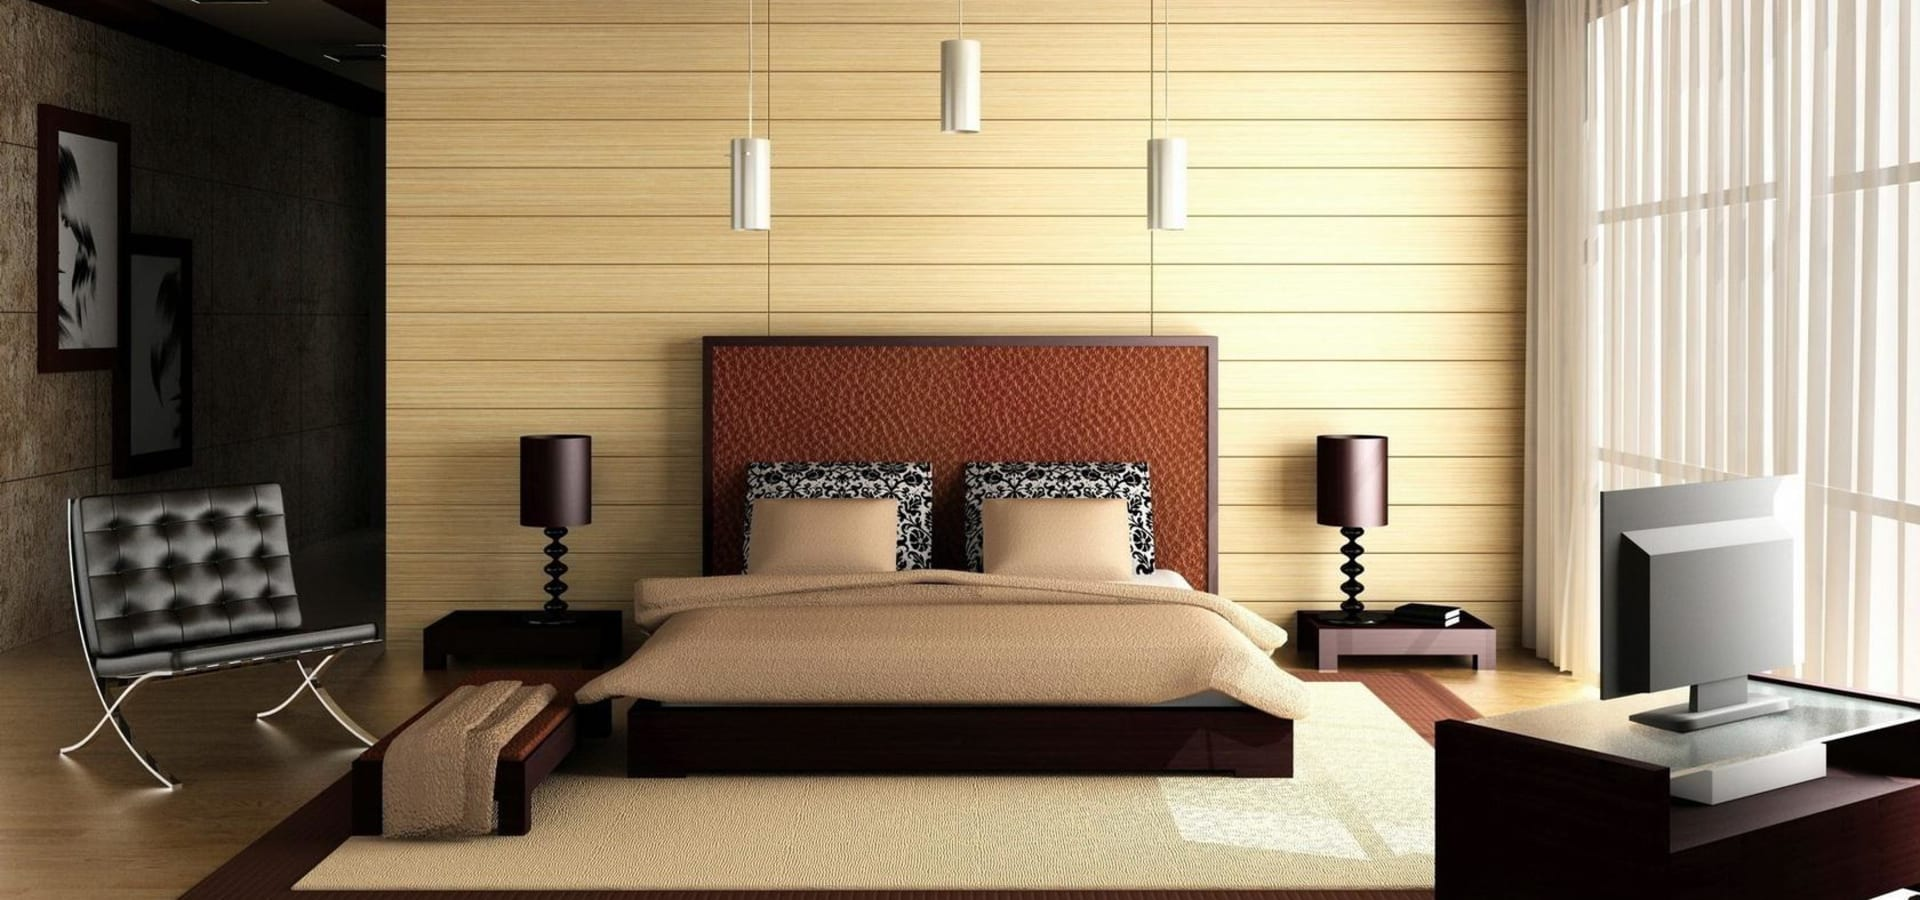 Residential commercial interior designers and decorators in bangalore